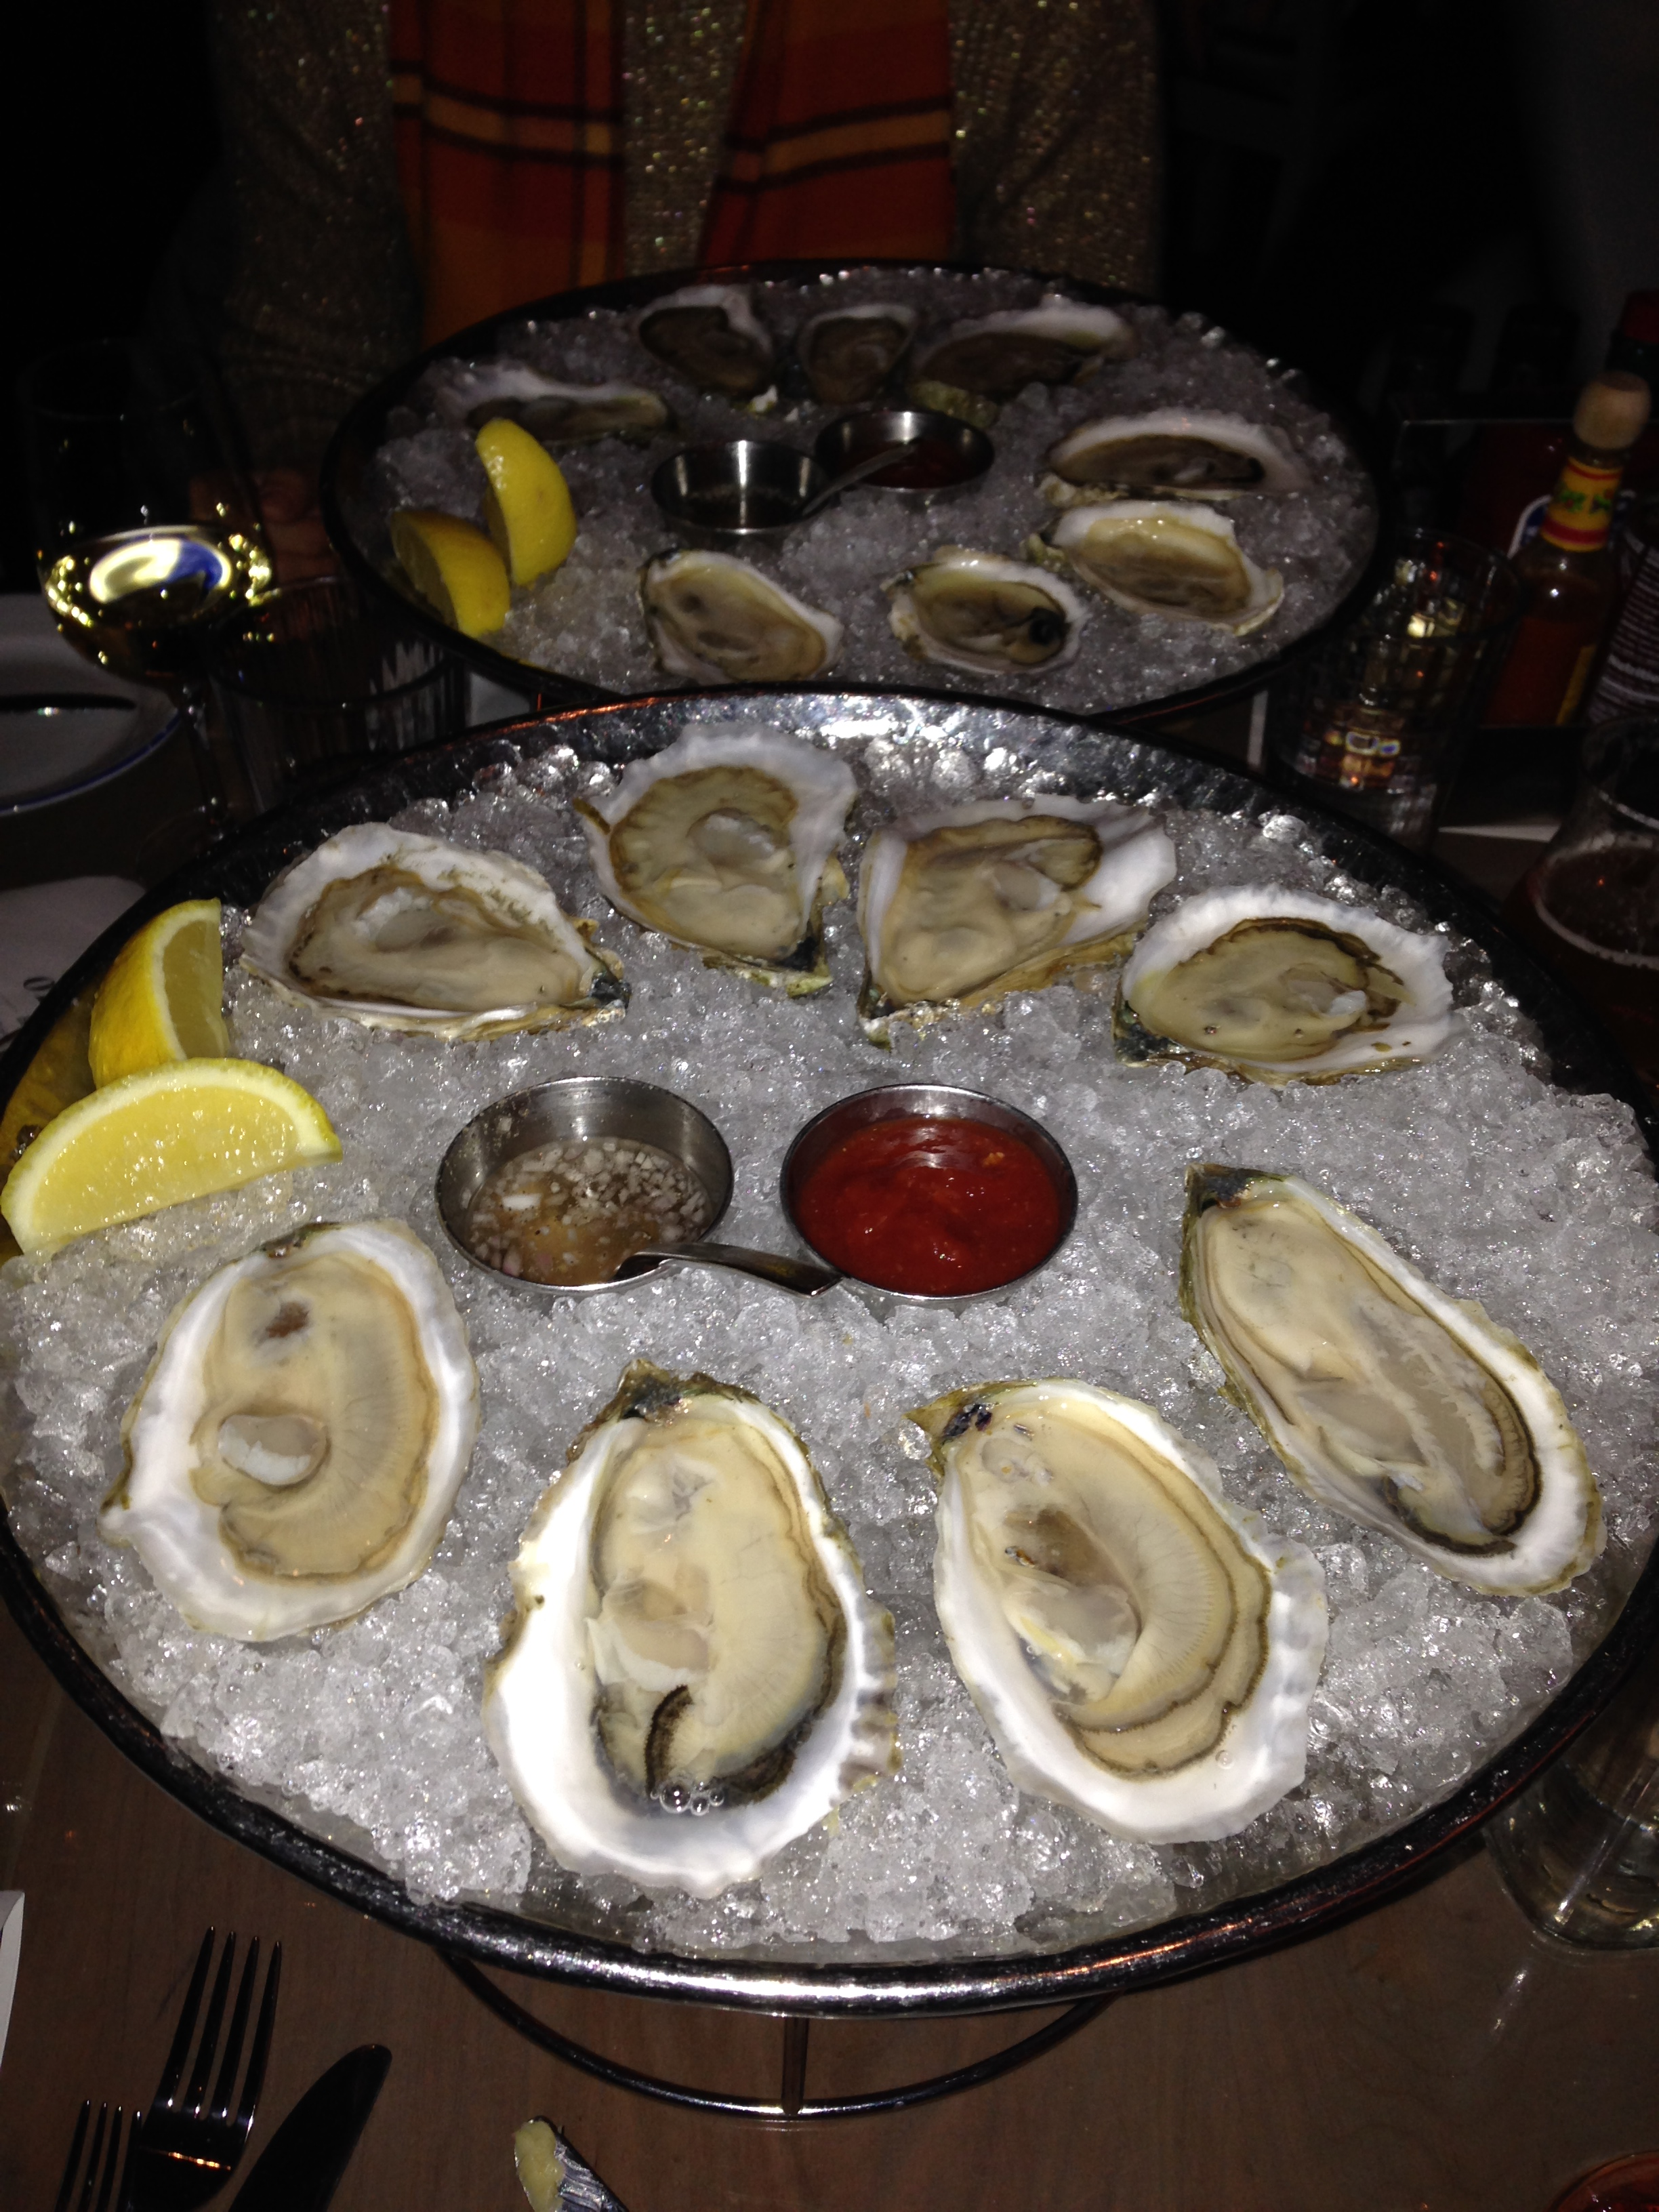 And be shellfish a little while longer.